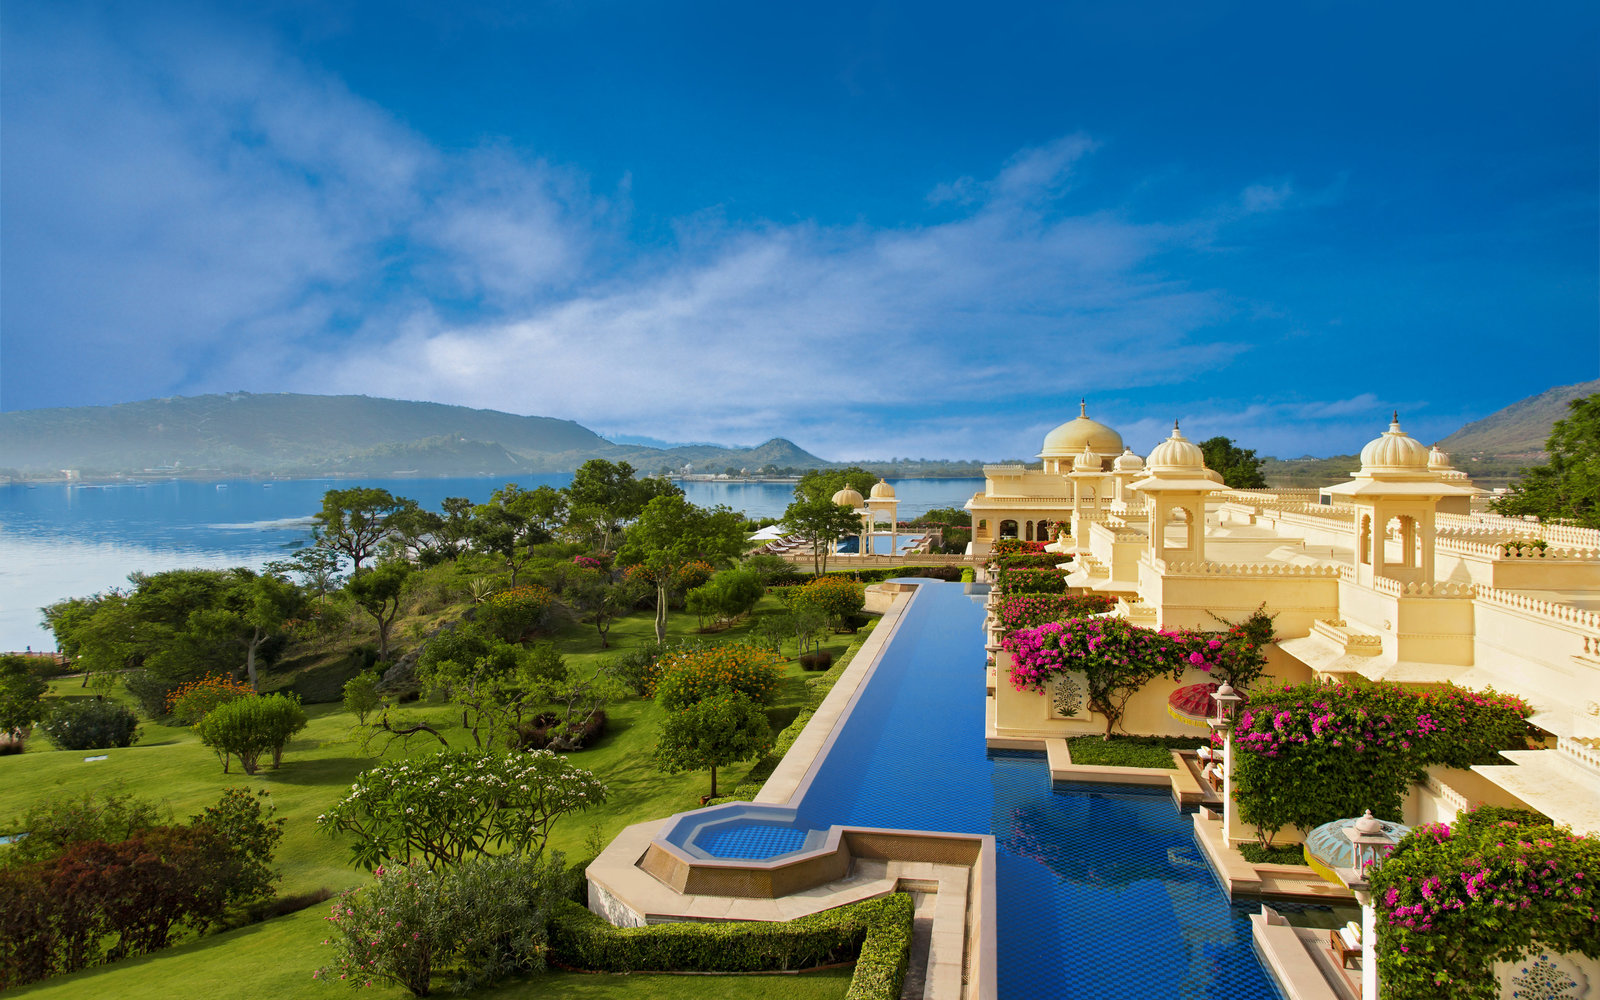 No. 2: The Oberoi Udaivilas, Udaipur, India